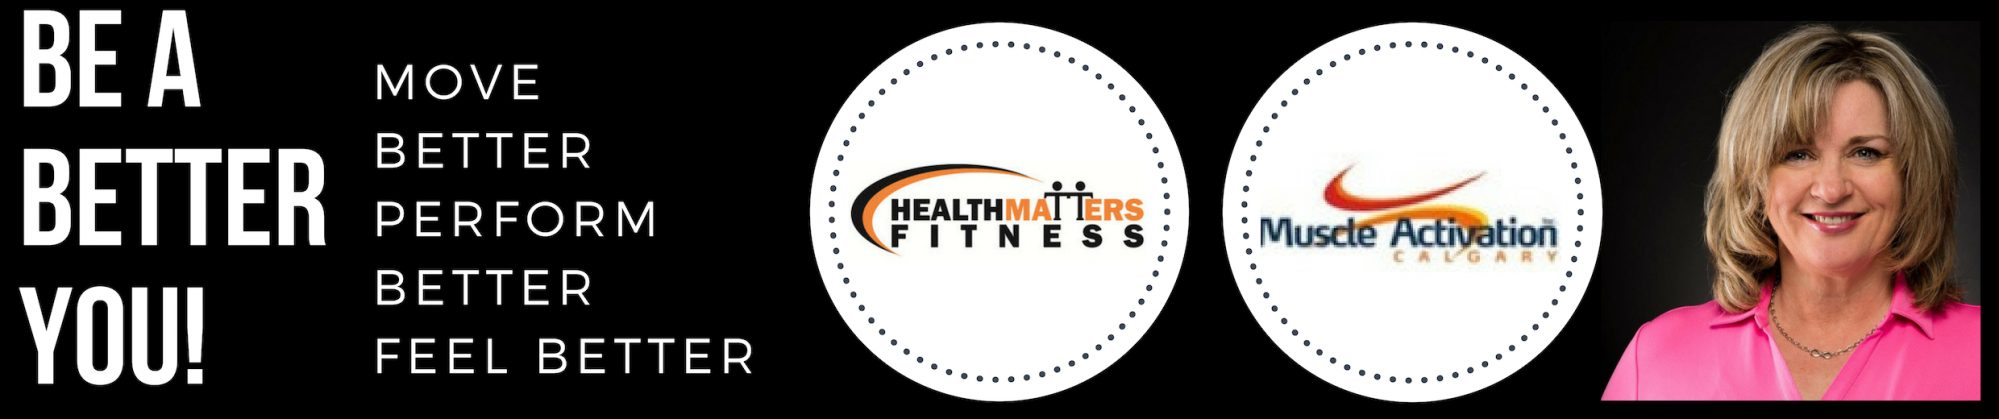 Health Matters Fitness